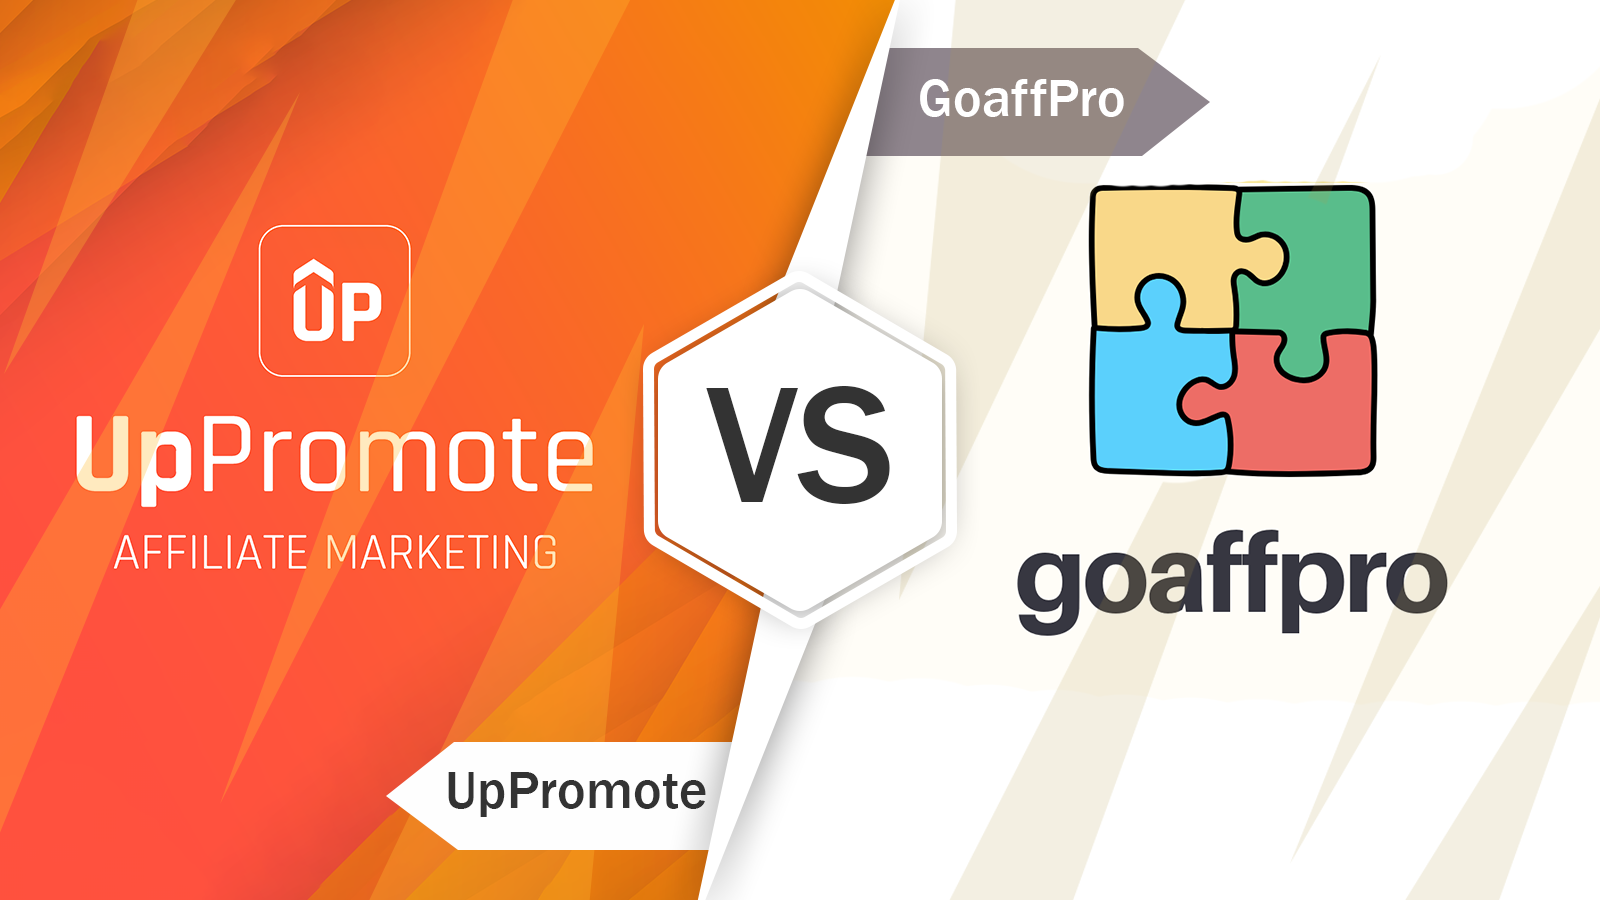 UpPromote: A great alternative to GoaffPro